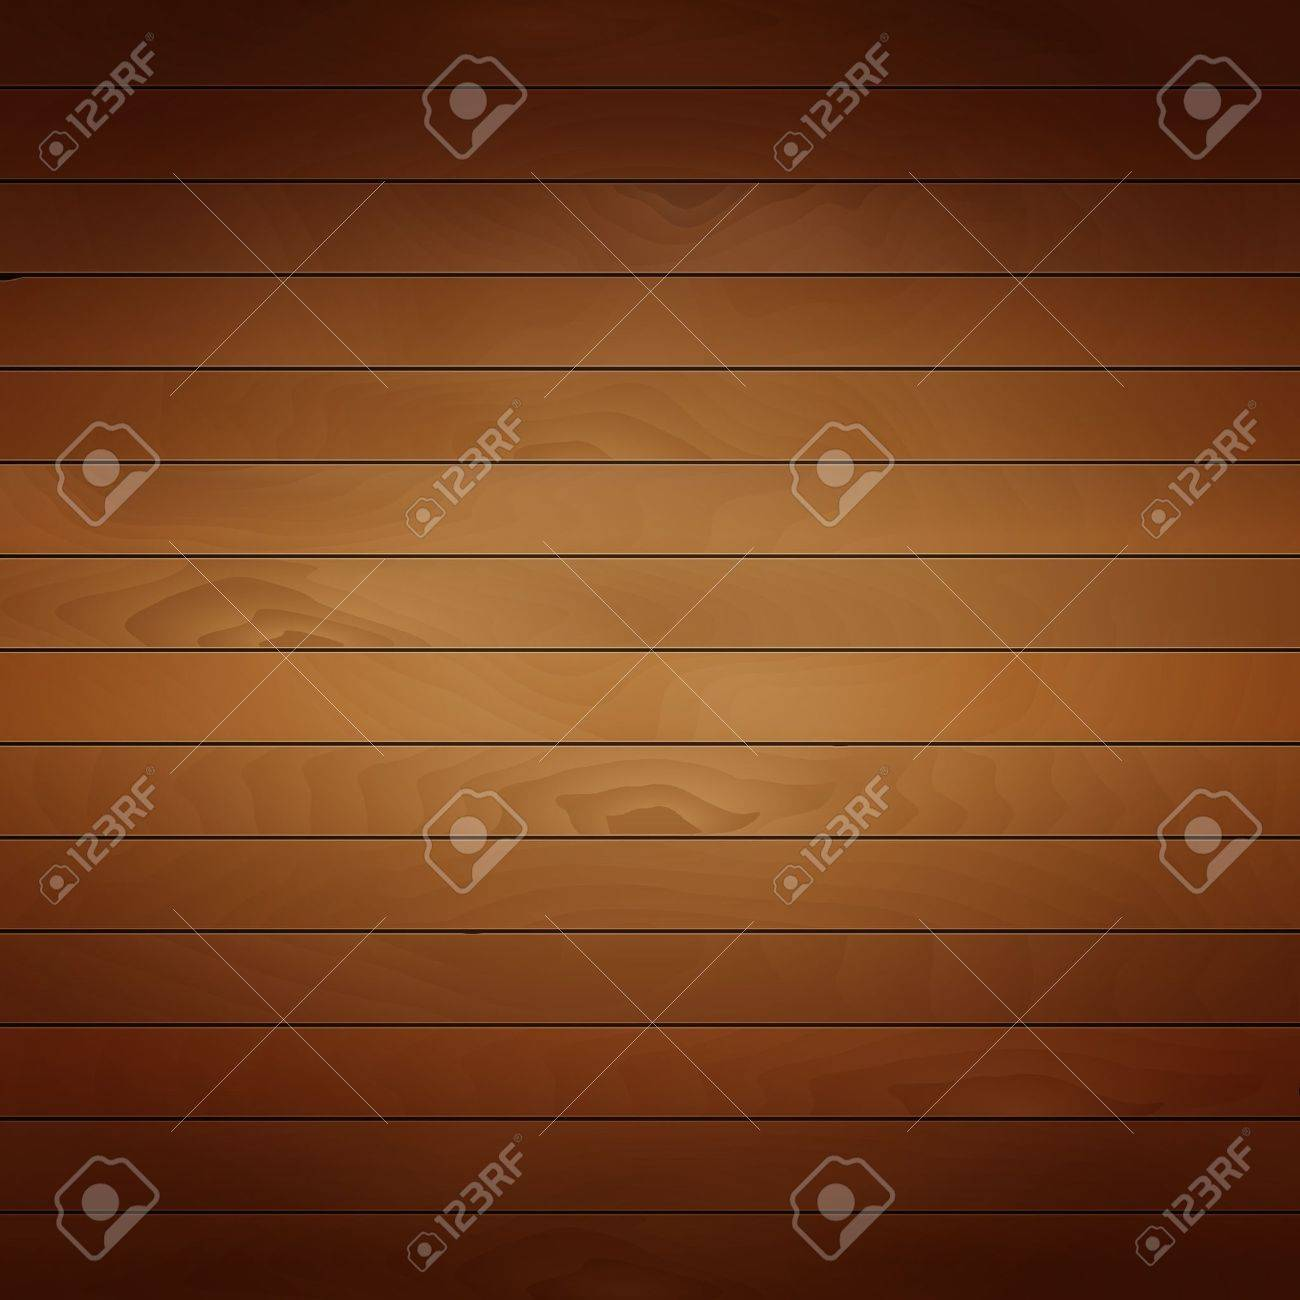 Vector wood board texture background - 16313307